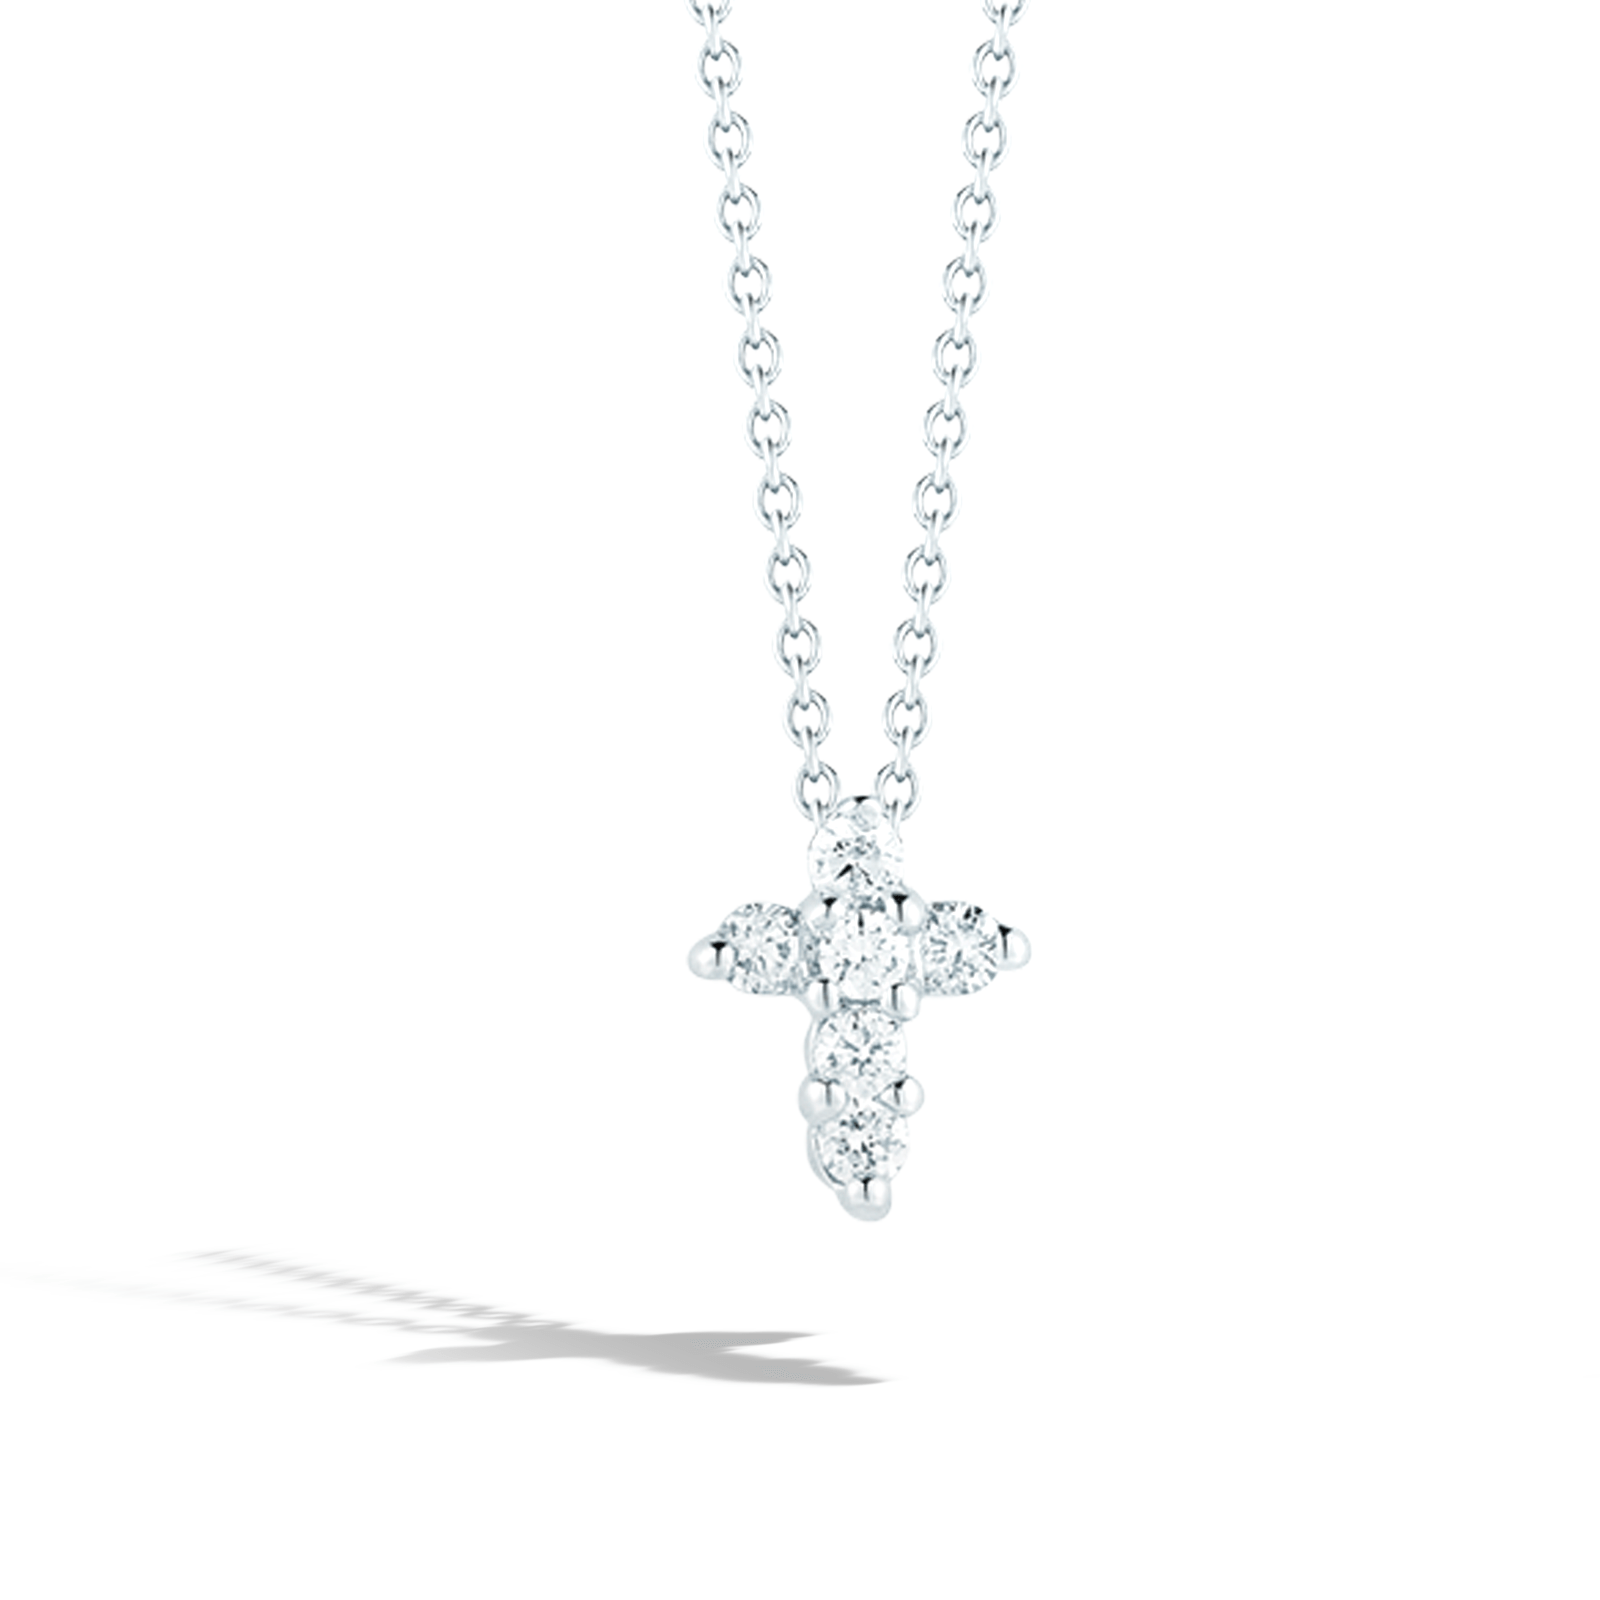 Roberto coin 001883awchx0 white gold diamond cross roberto coin tiny treasures white gold small diamond cross pendant necklace aloadofball Choice Image